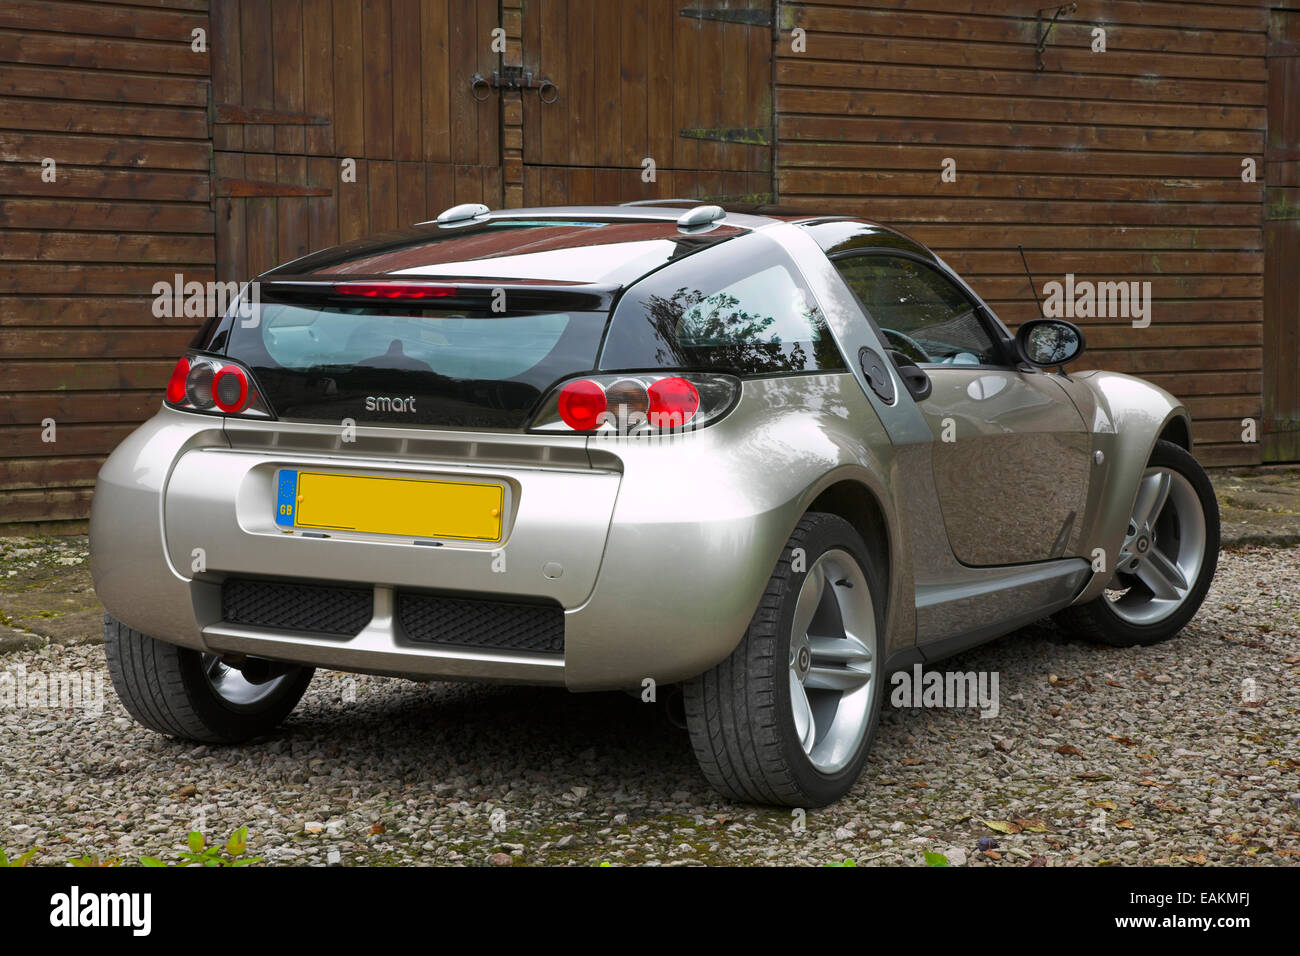 smart roadster coupe - photo #5